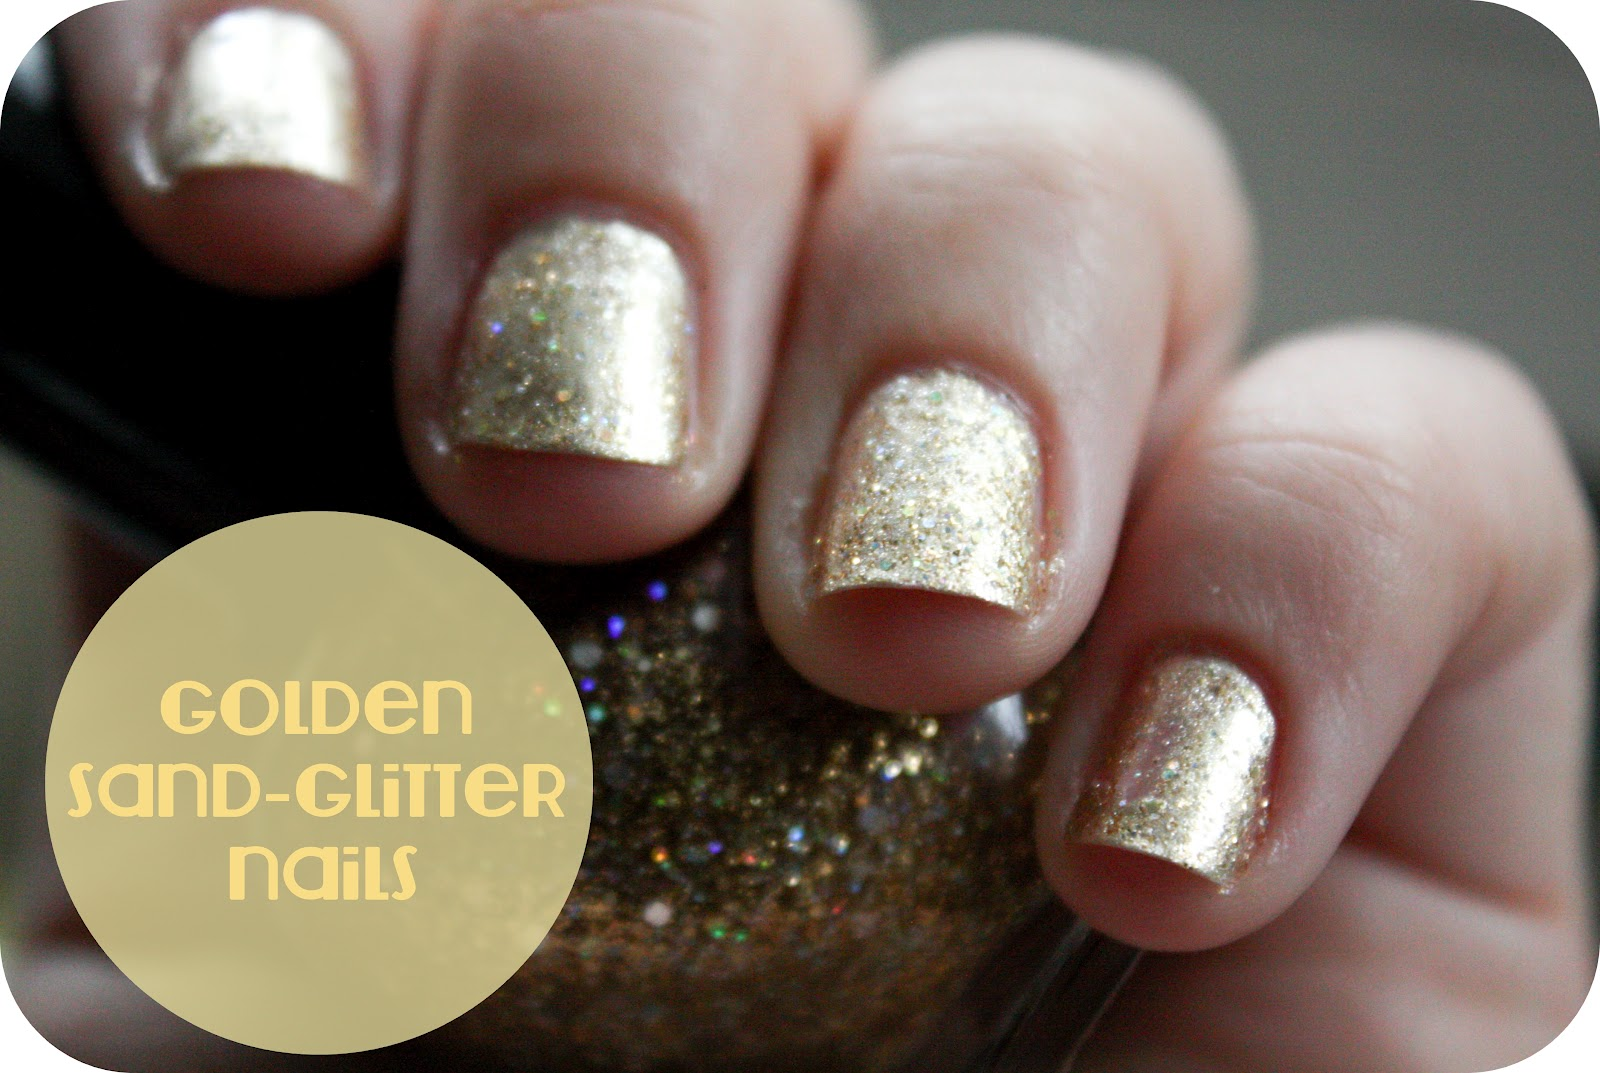 golden sand-glitter nails (feat a few cookie-poser snaps